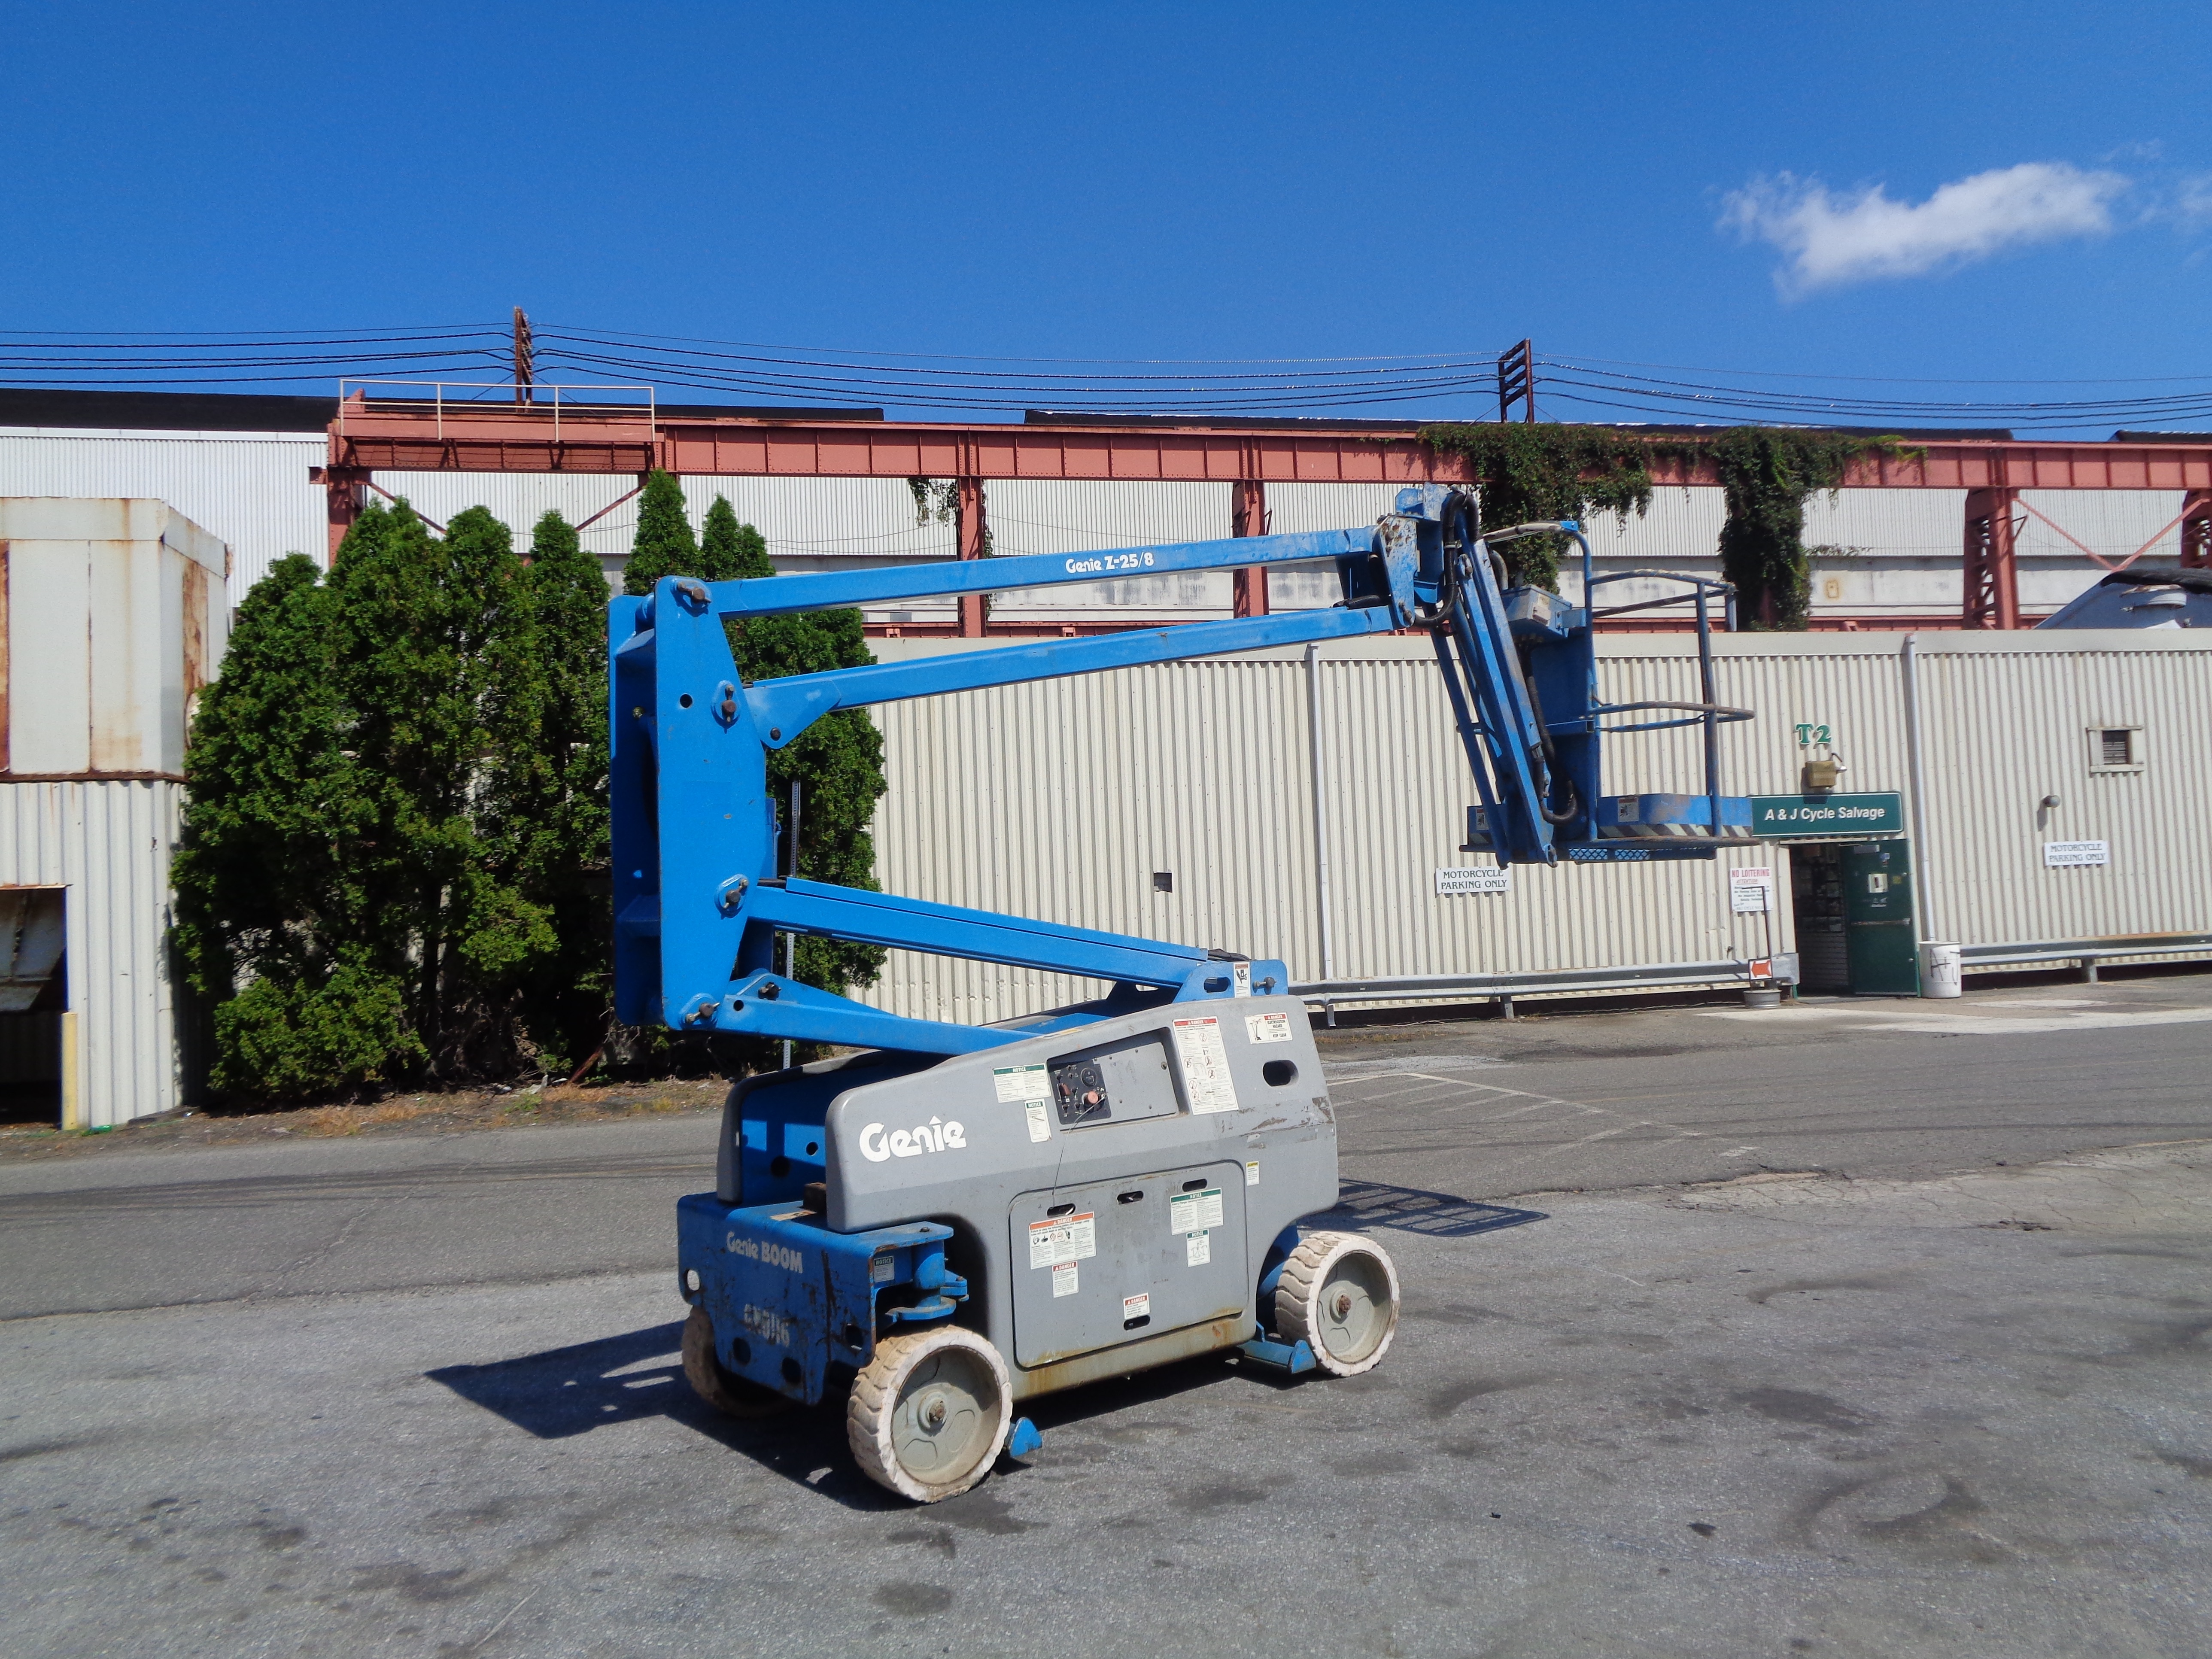 Lot 45 - Genie Z25/8- Boom lift-Electric - 25ft Height